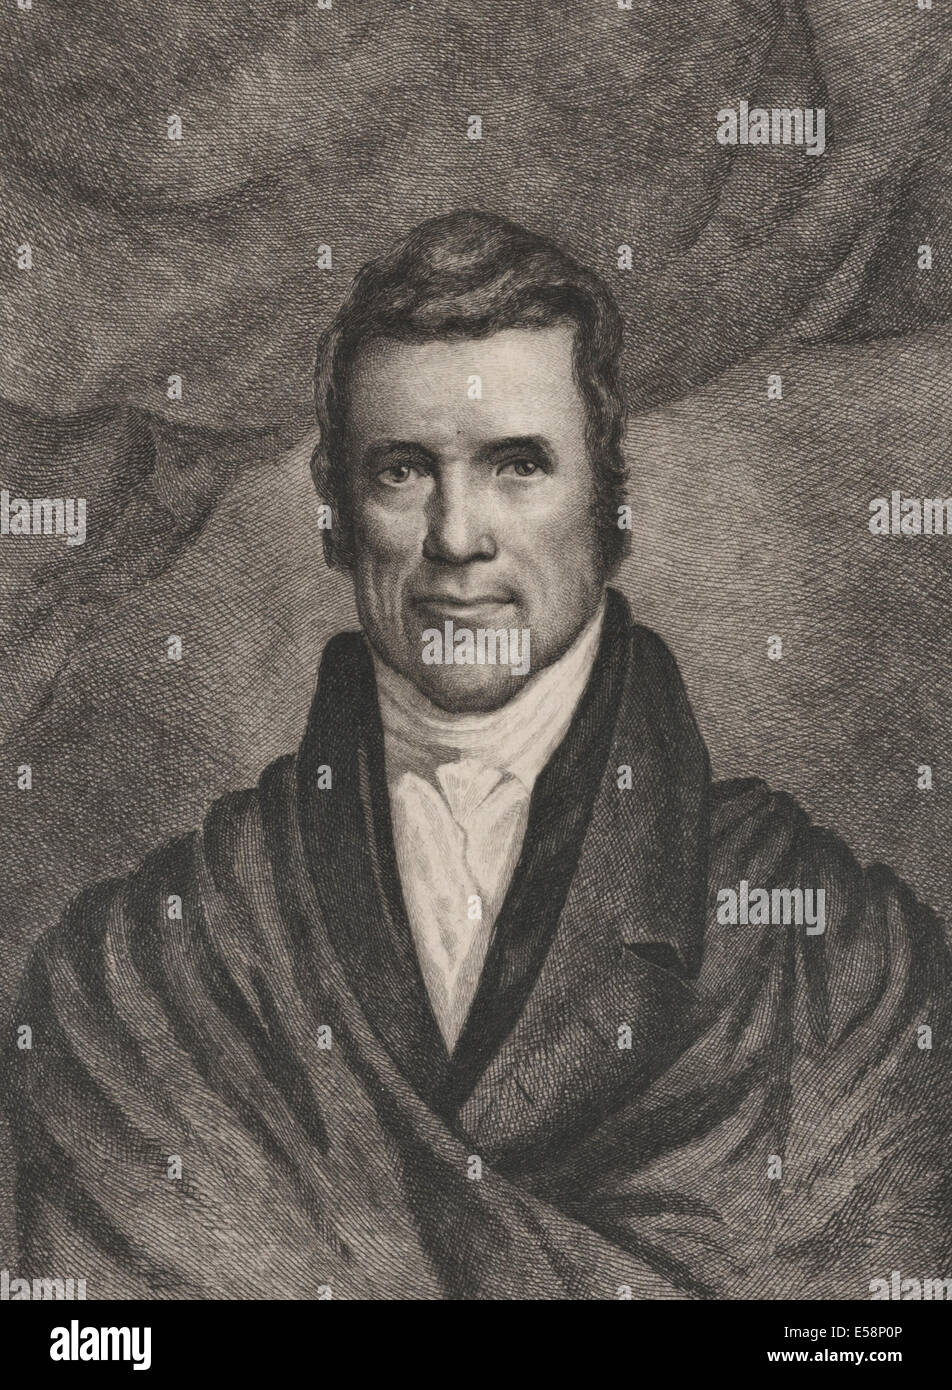 Chief Justice John Marshall, Chief Justice of the USA Supreme Court 1801-1835 - Stock Image